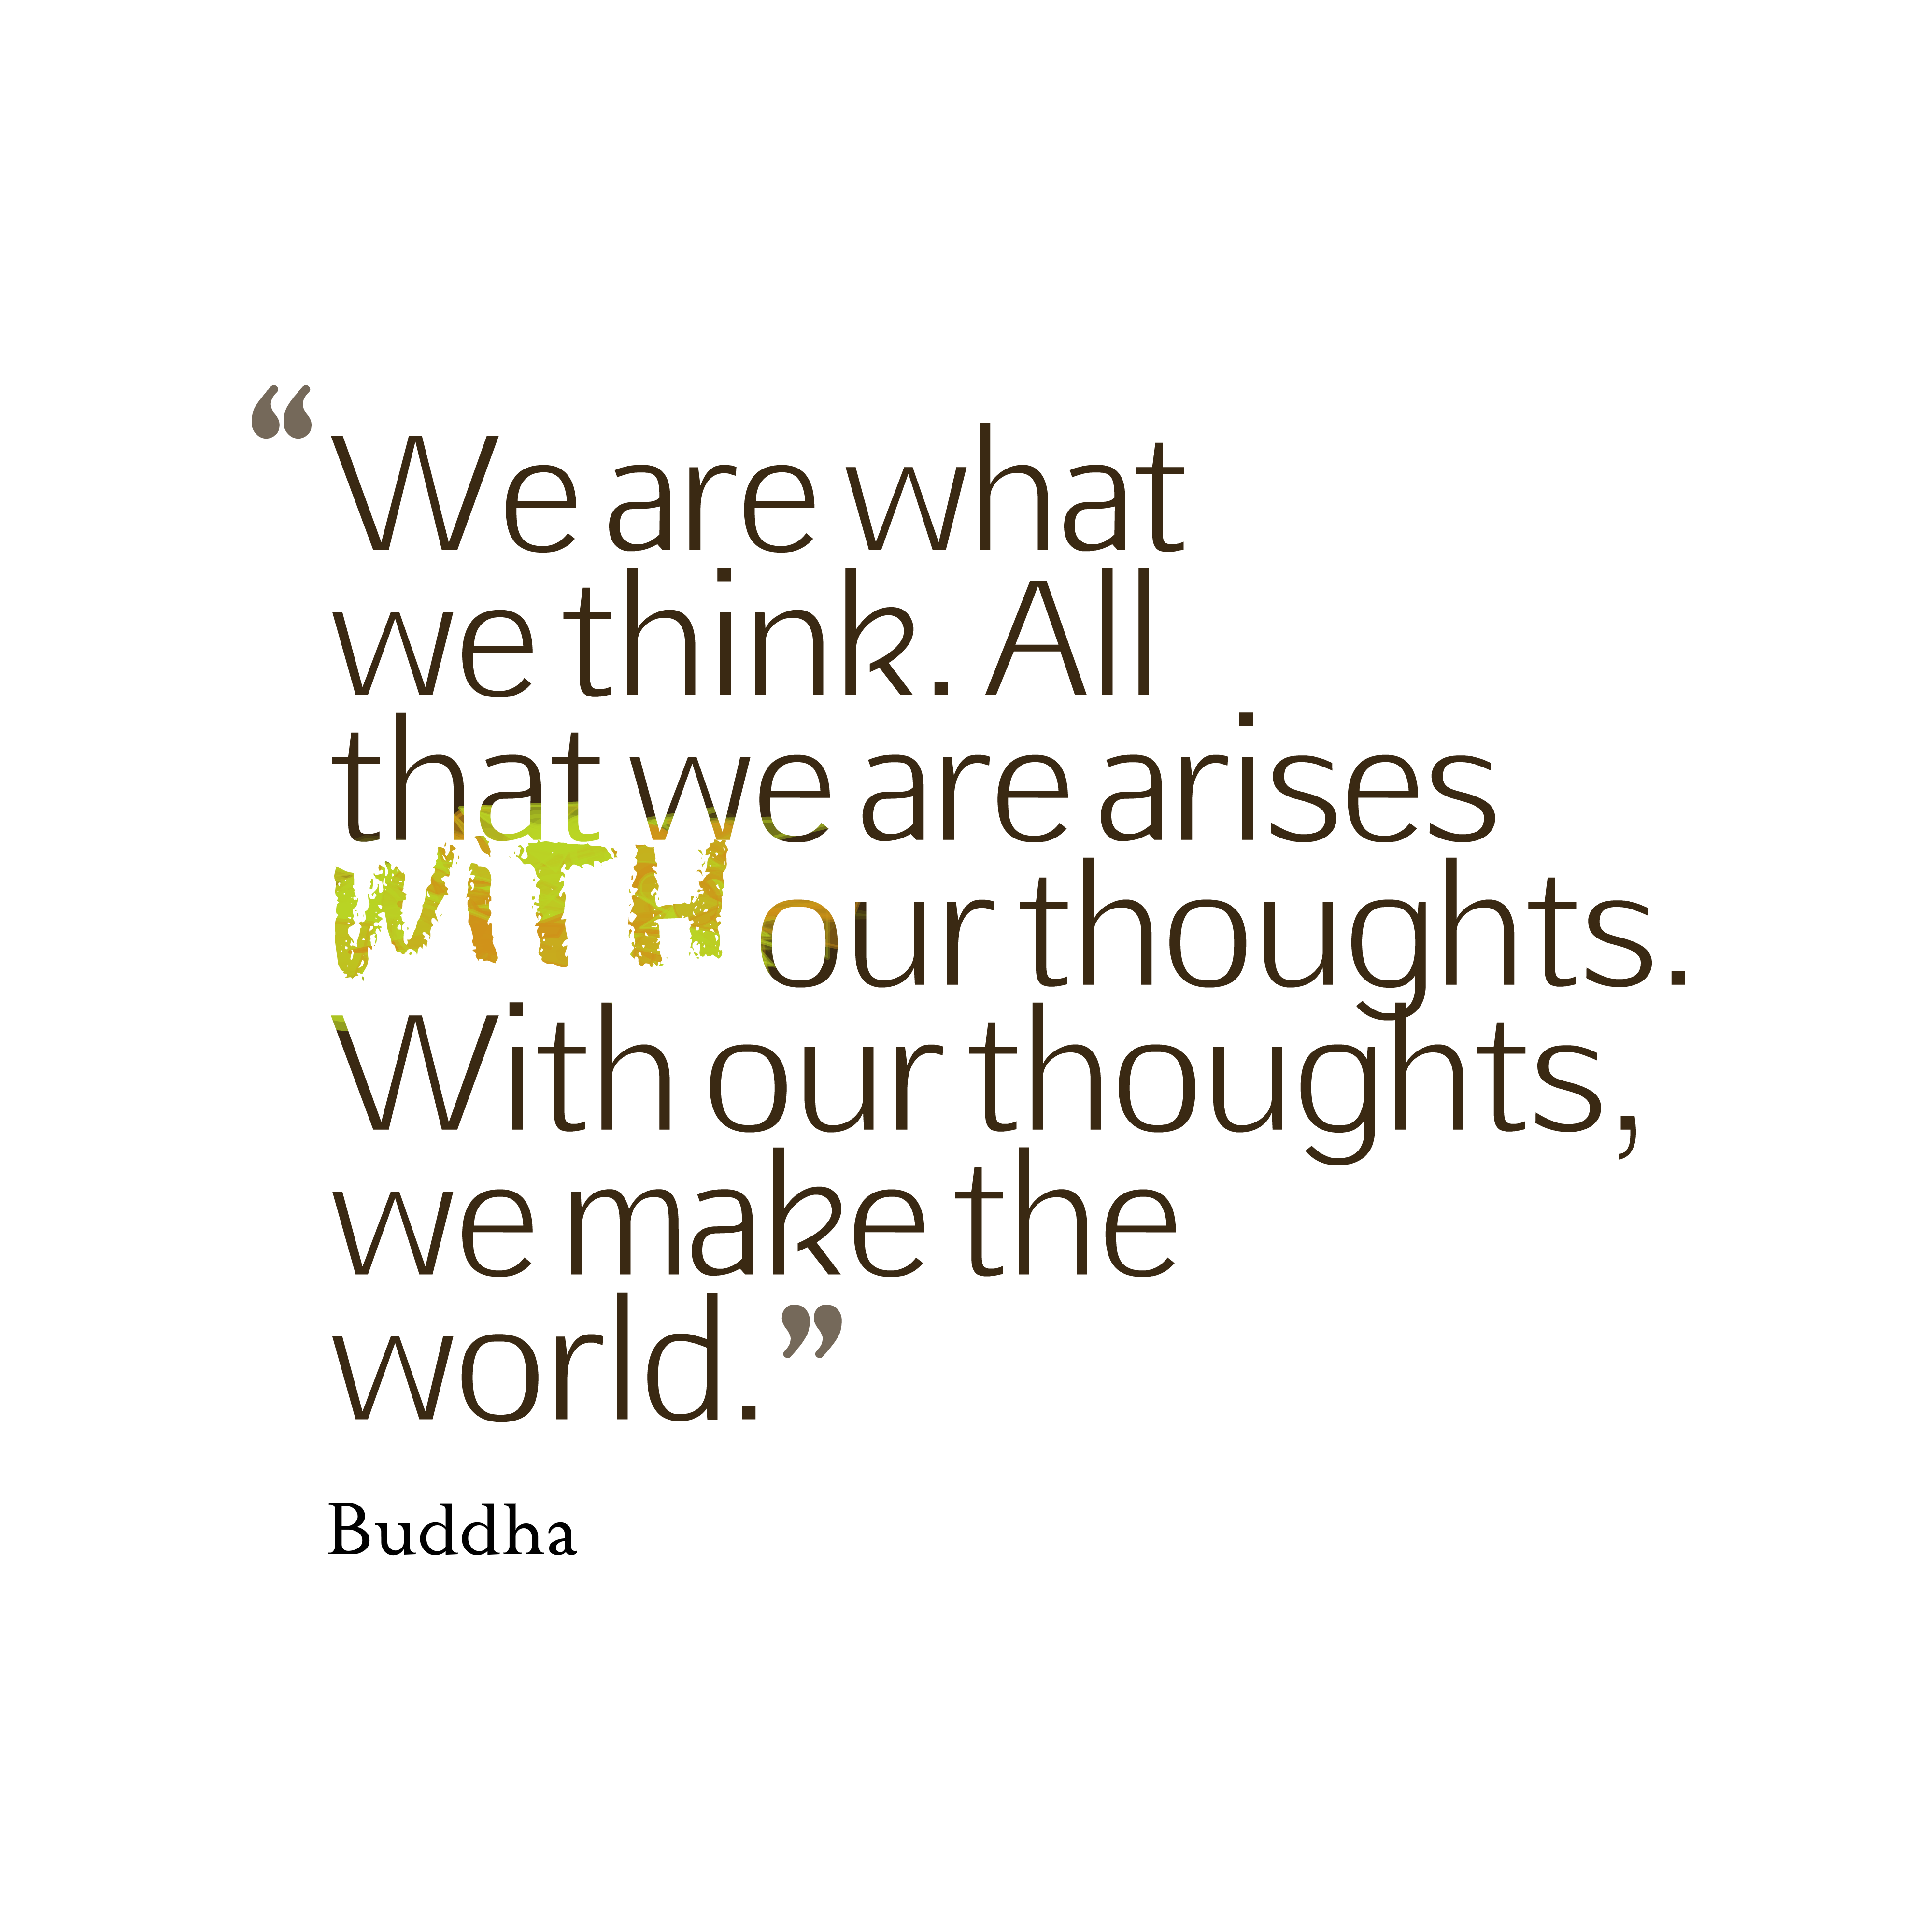 Quotes image of We are what we think. All that we are arises with our thoughts. With our thoughts, we make the world.